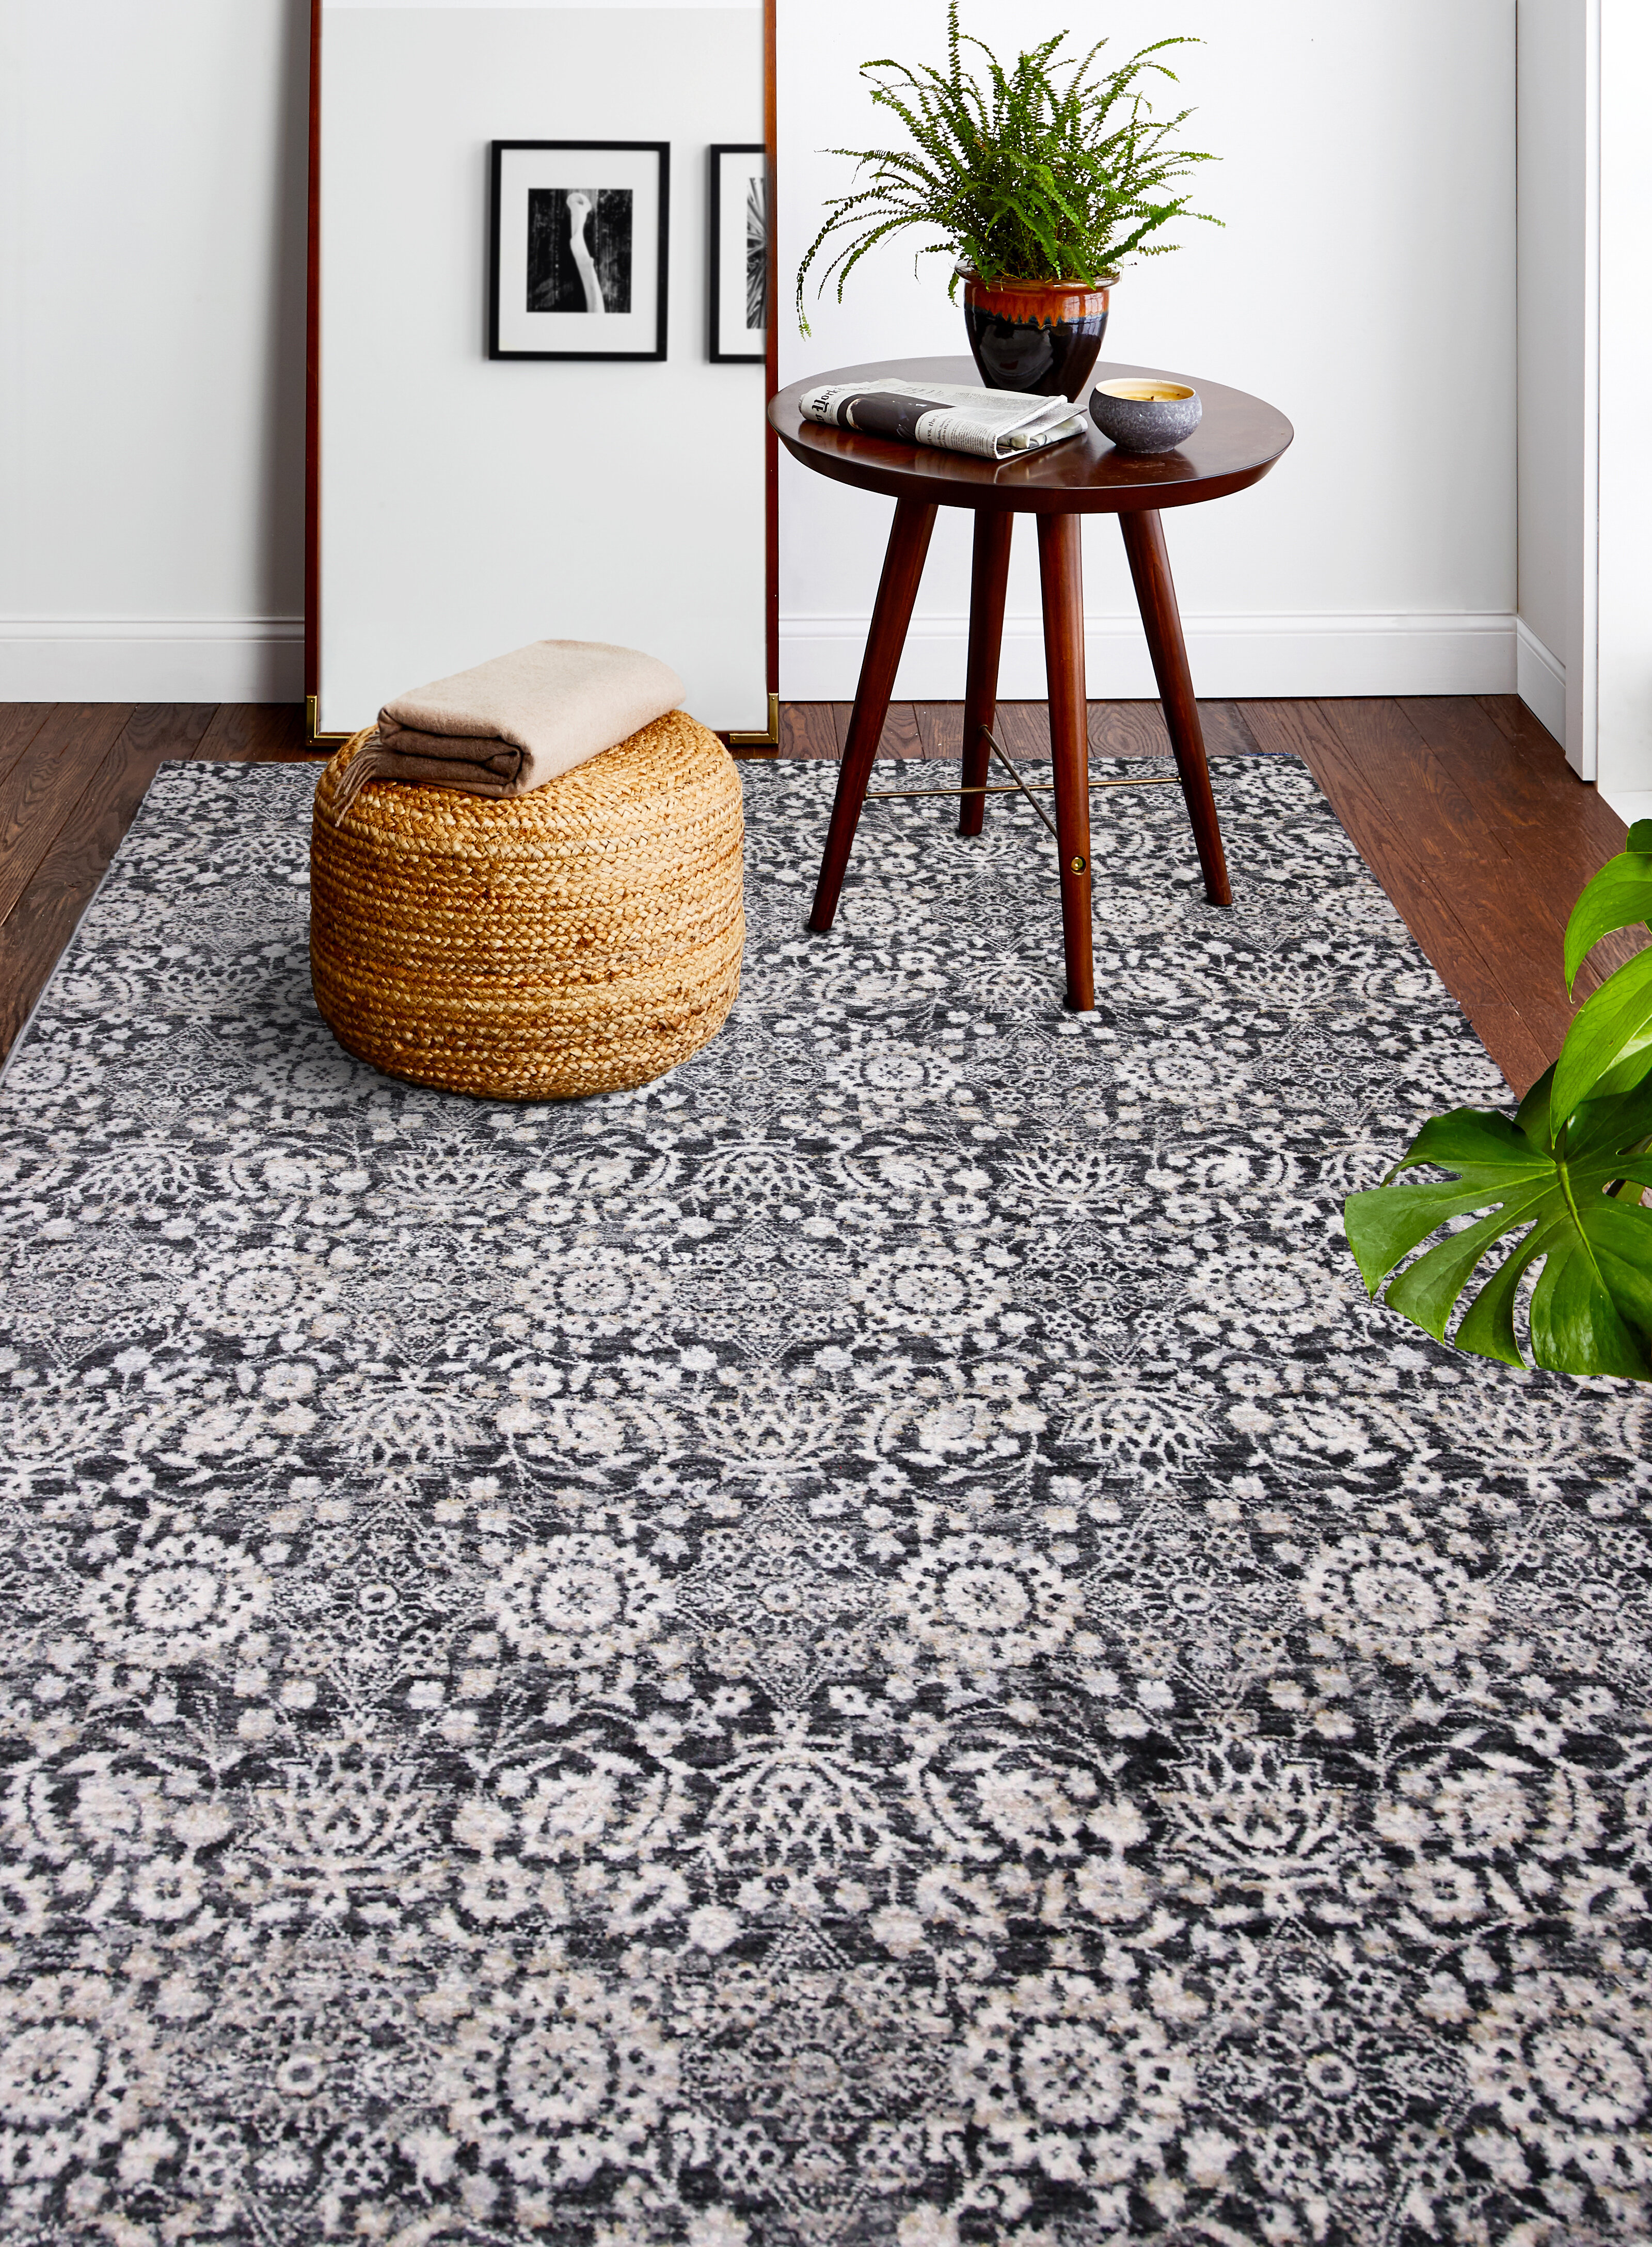 Floral Plant Area Rugs You Ll Love In 2021 Wayfair